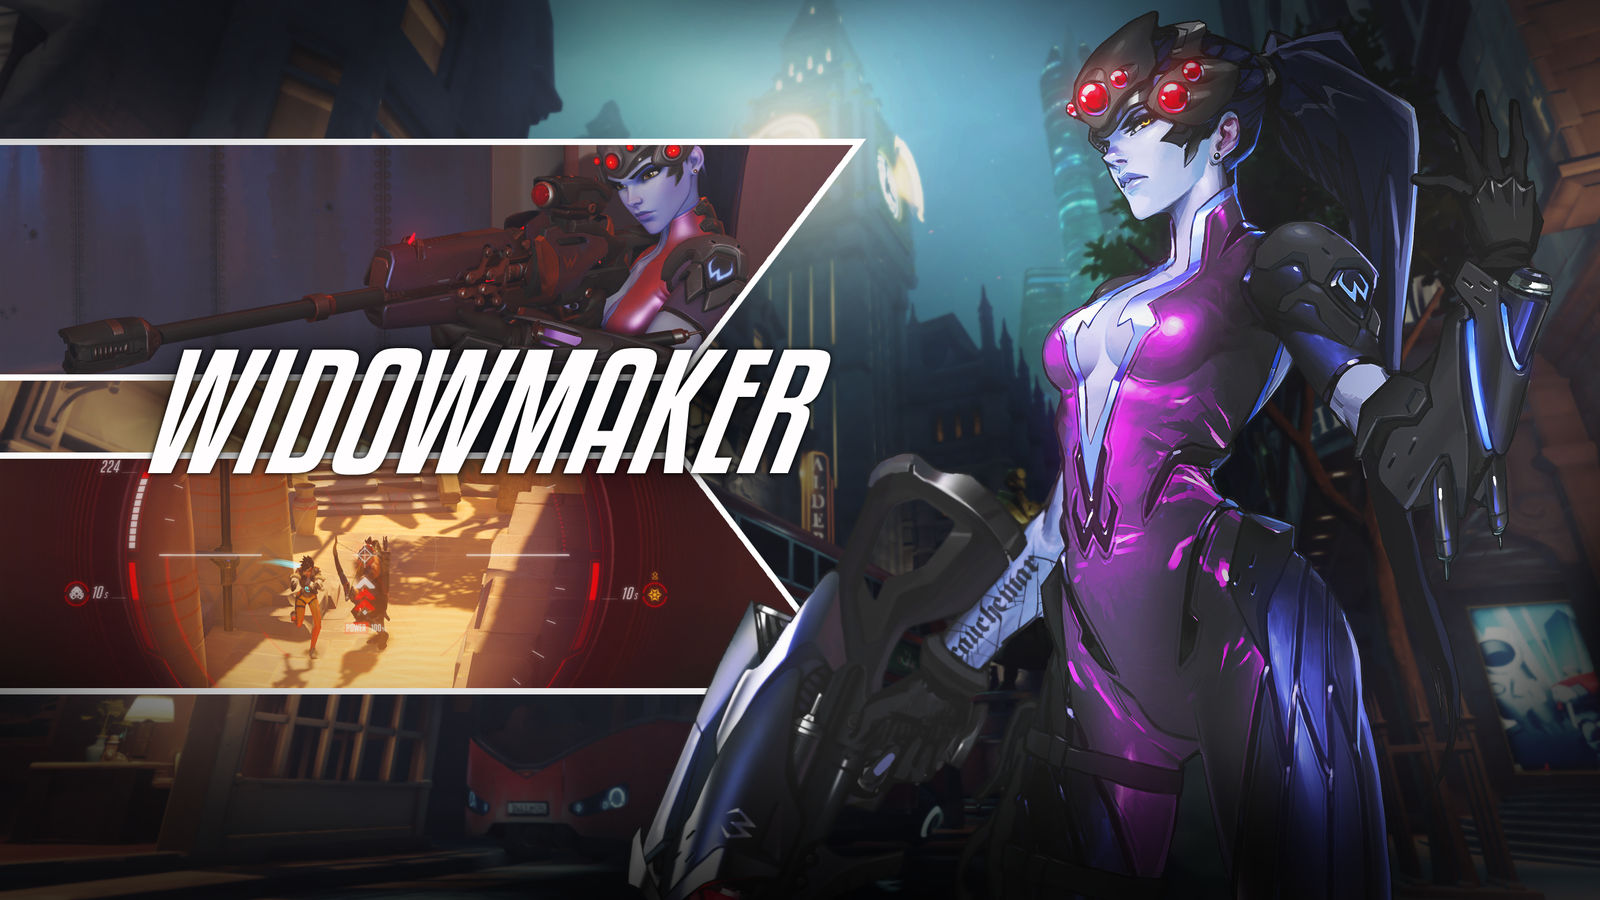 Widowmaker Skin for Overwatch